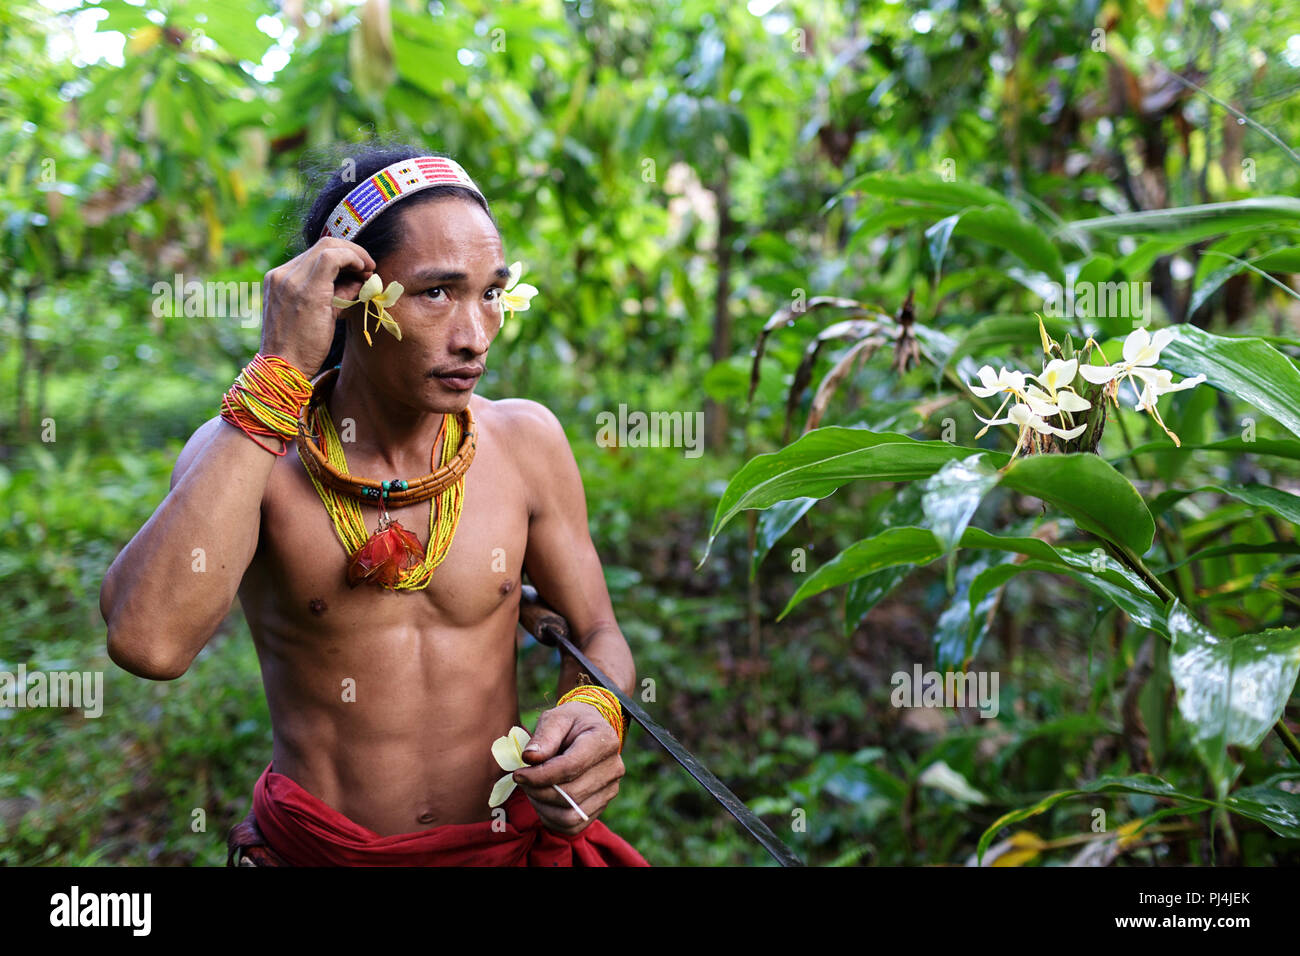 Portrait of the youngest shaman, smiling and decorated with flowers - Stock Image